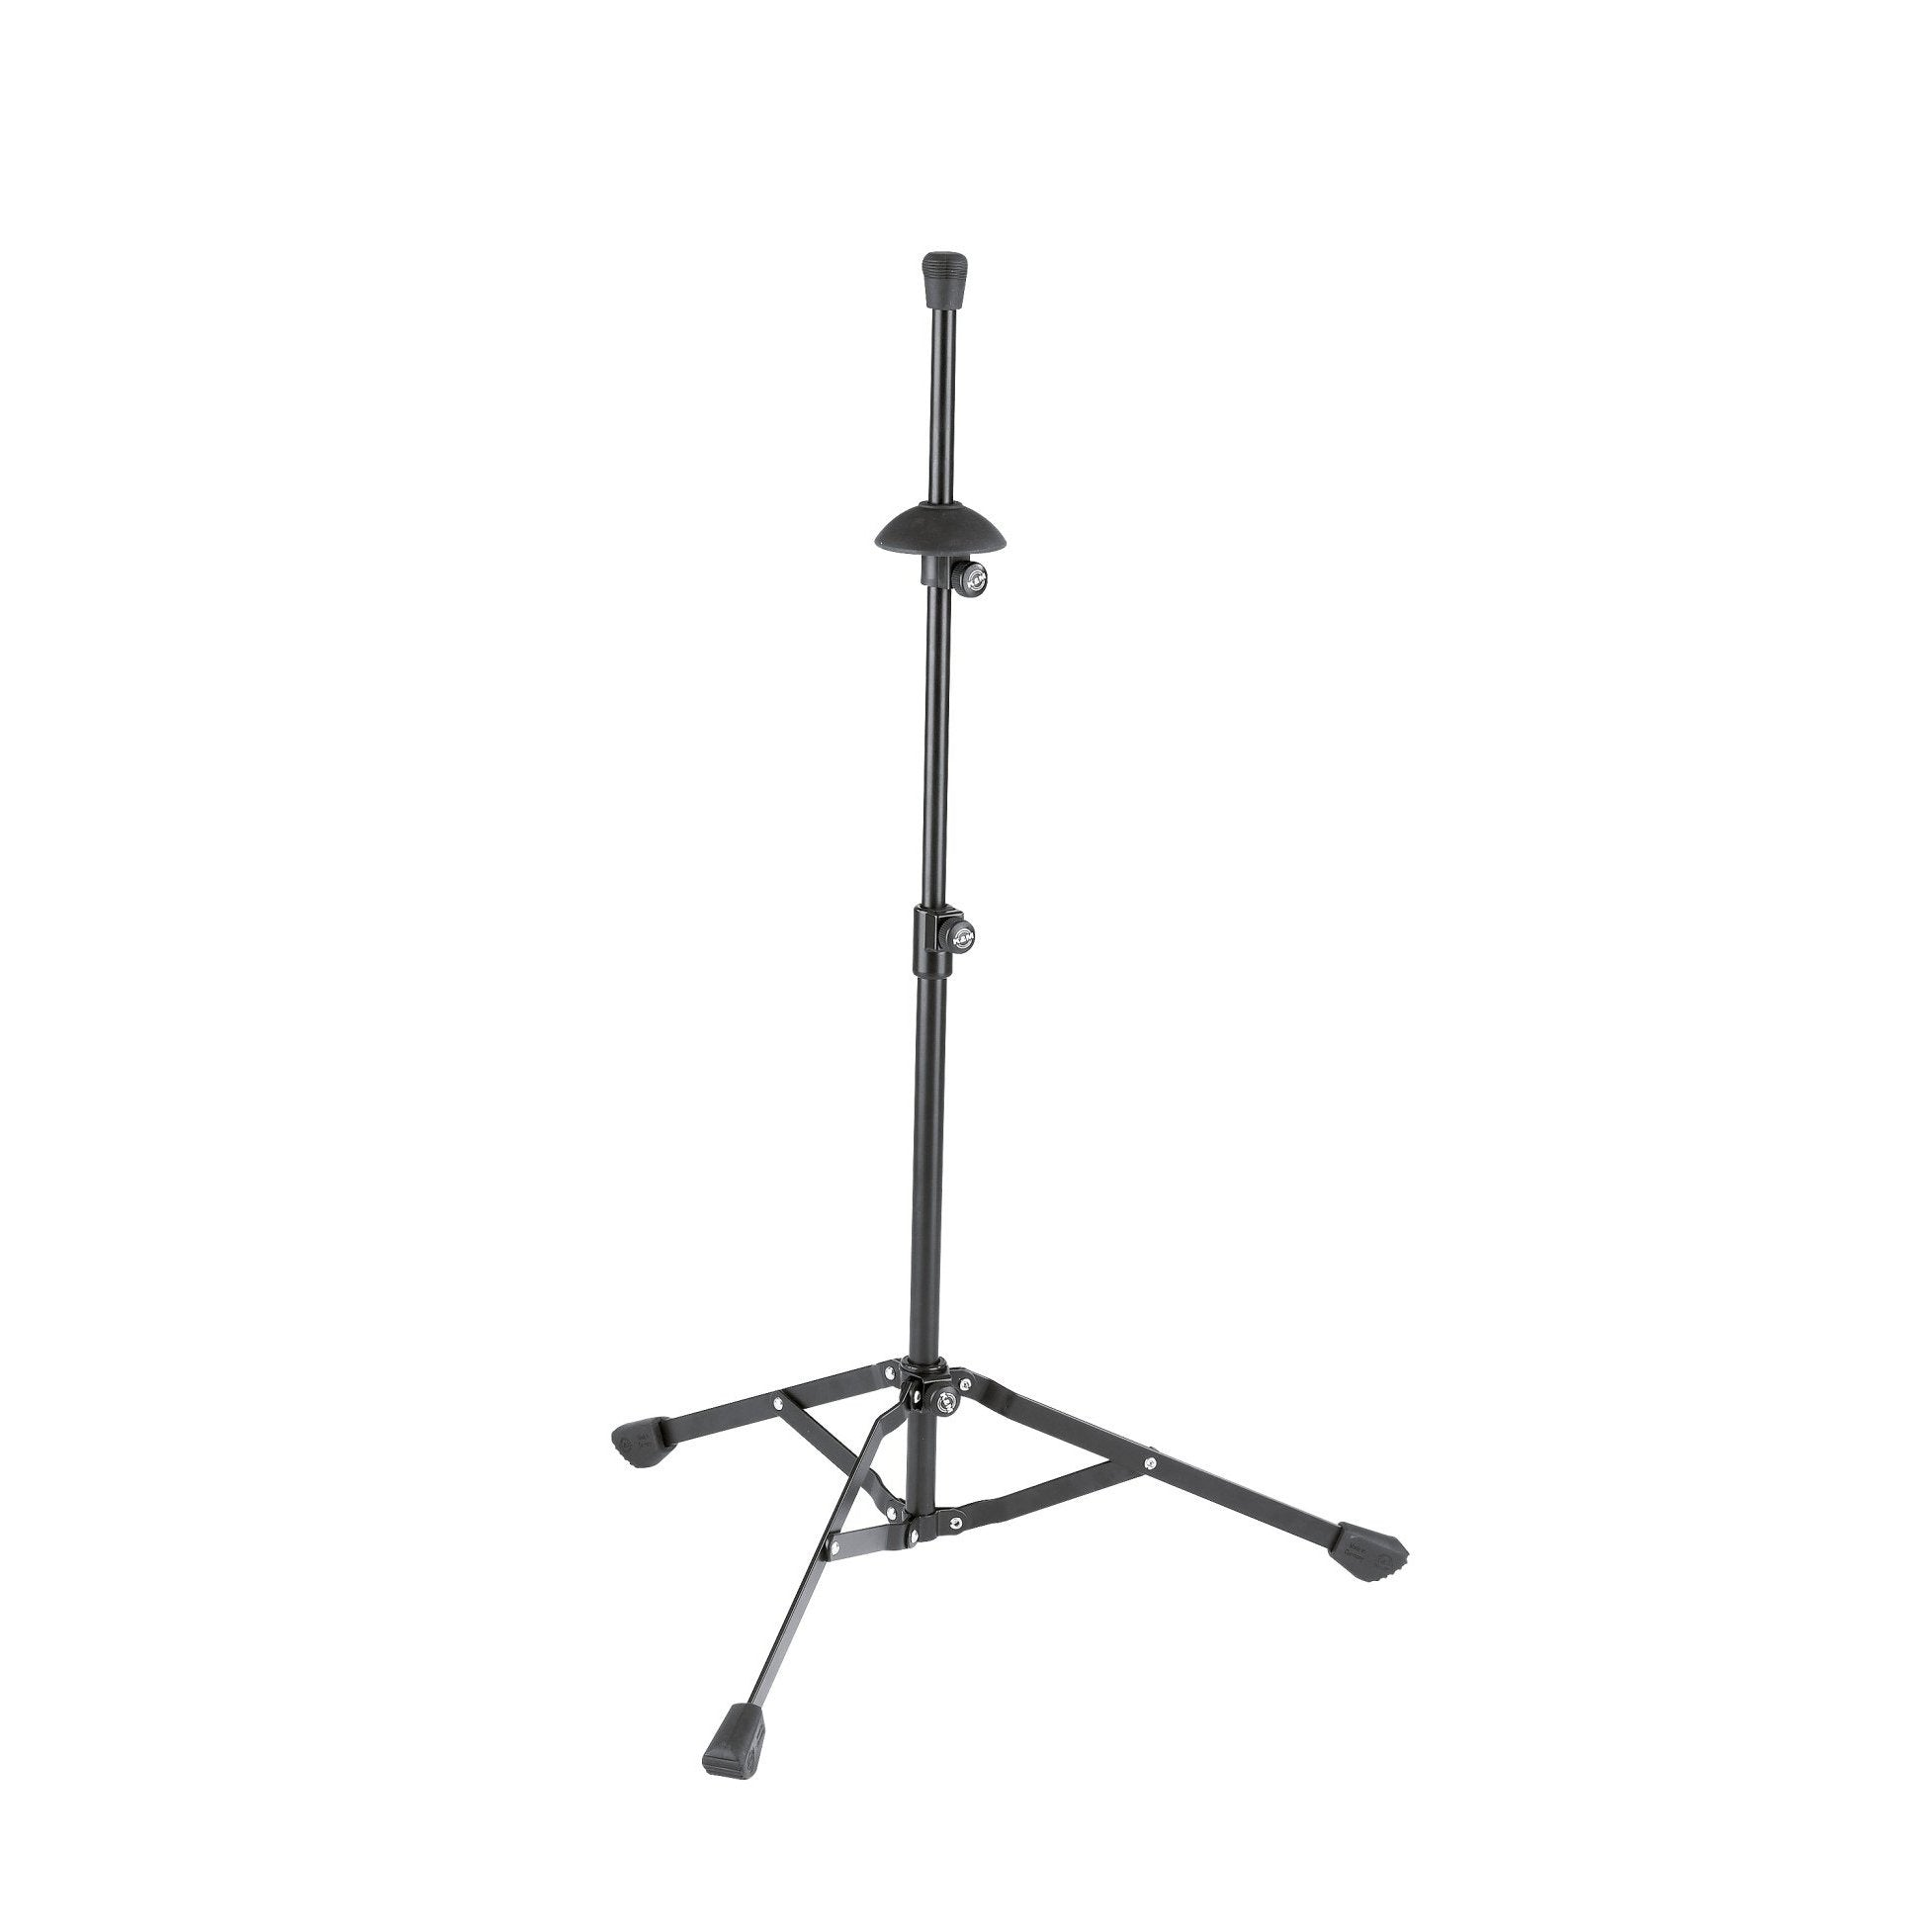 König & Meyer - 149/9 Trombone Stand-Instrument Stand-König & Meyer-Music Elements